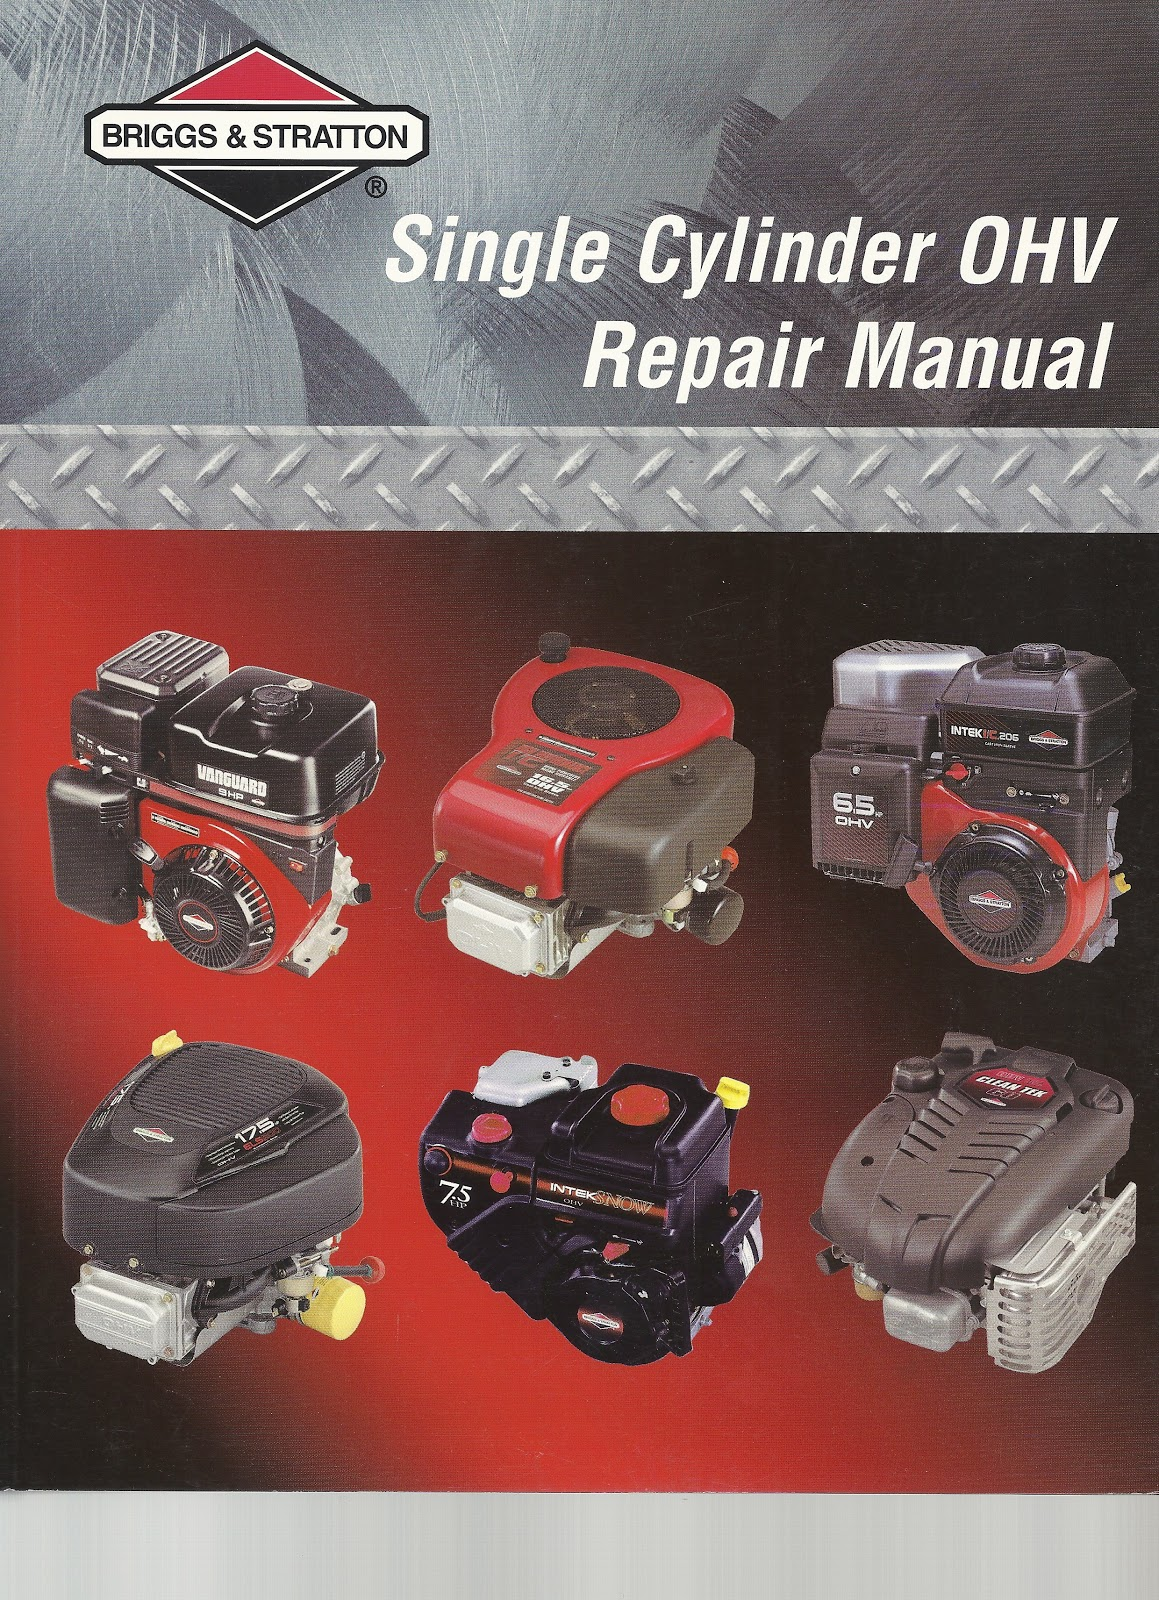 Download Briggs Stratton Engine Repair Information Manual Guide